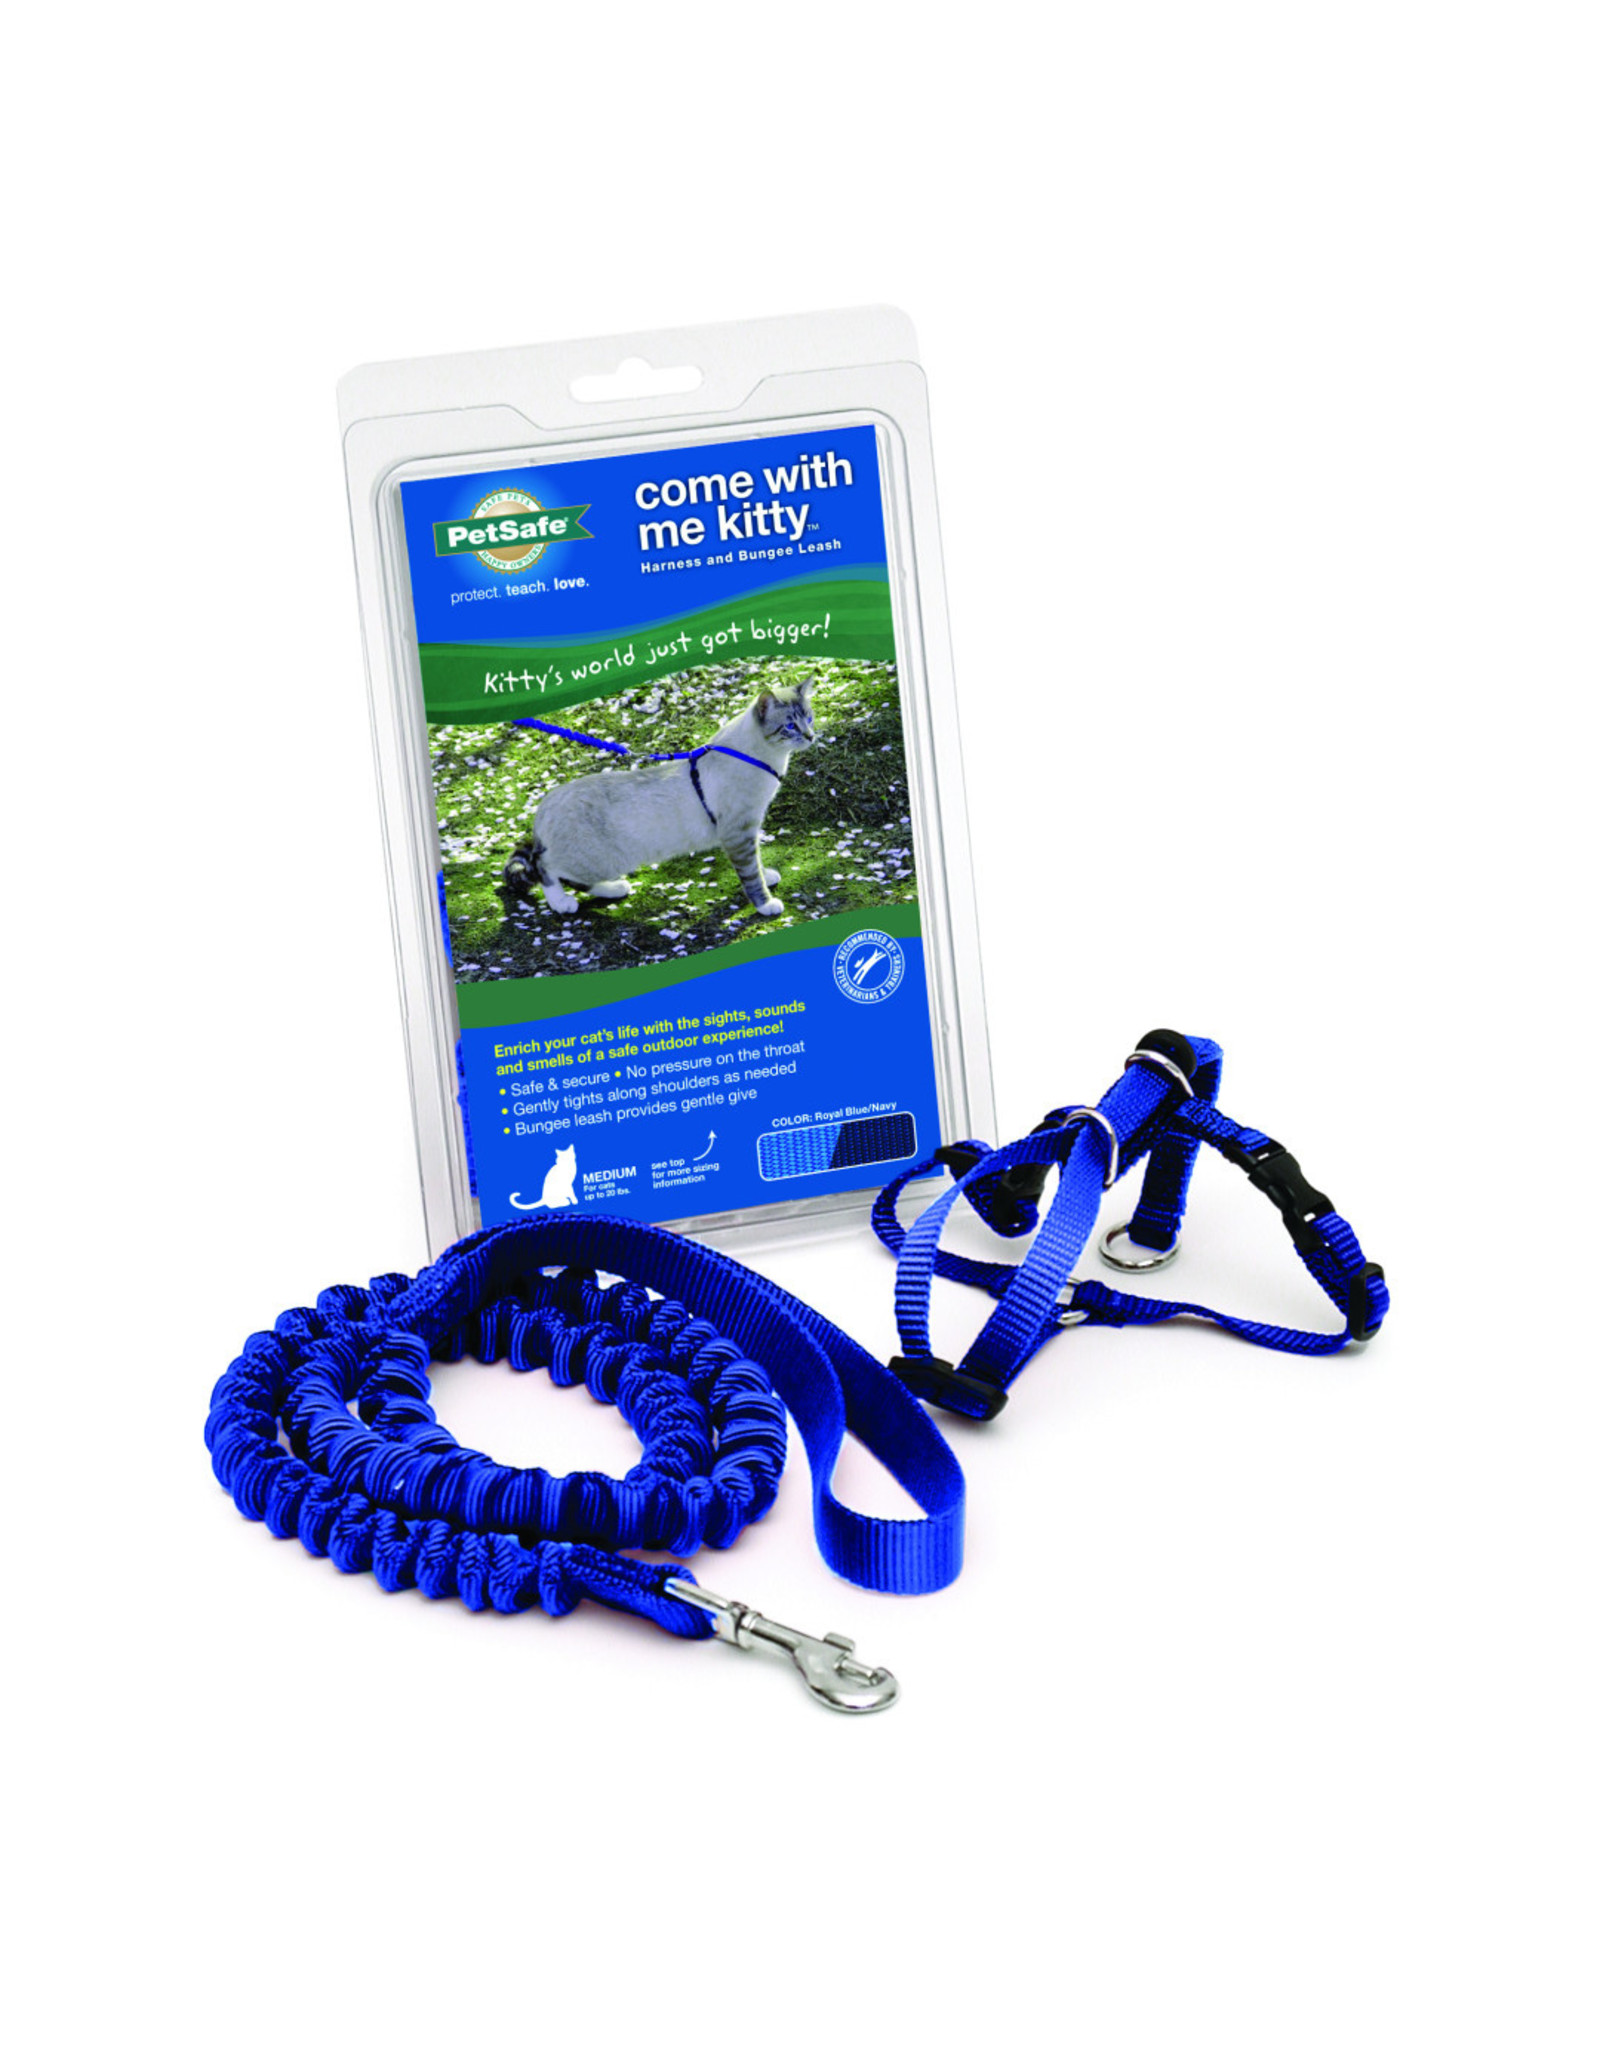 Petsafe Petsafe Come With Me Kitty Harness and Leash